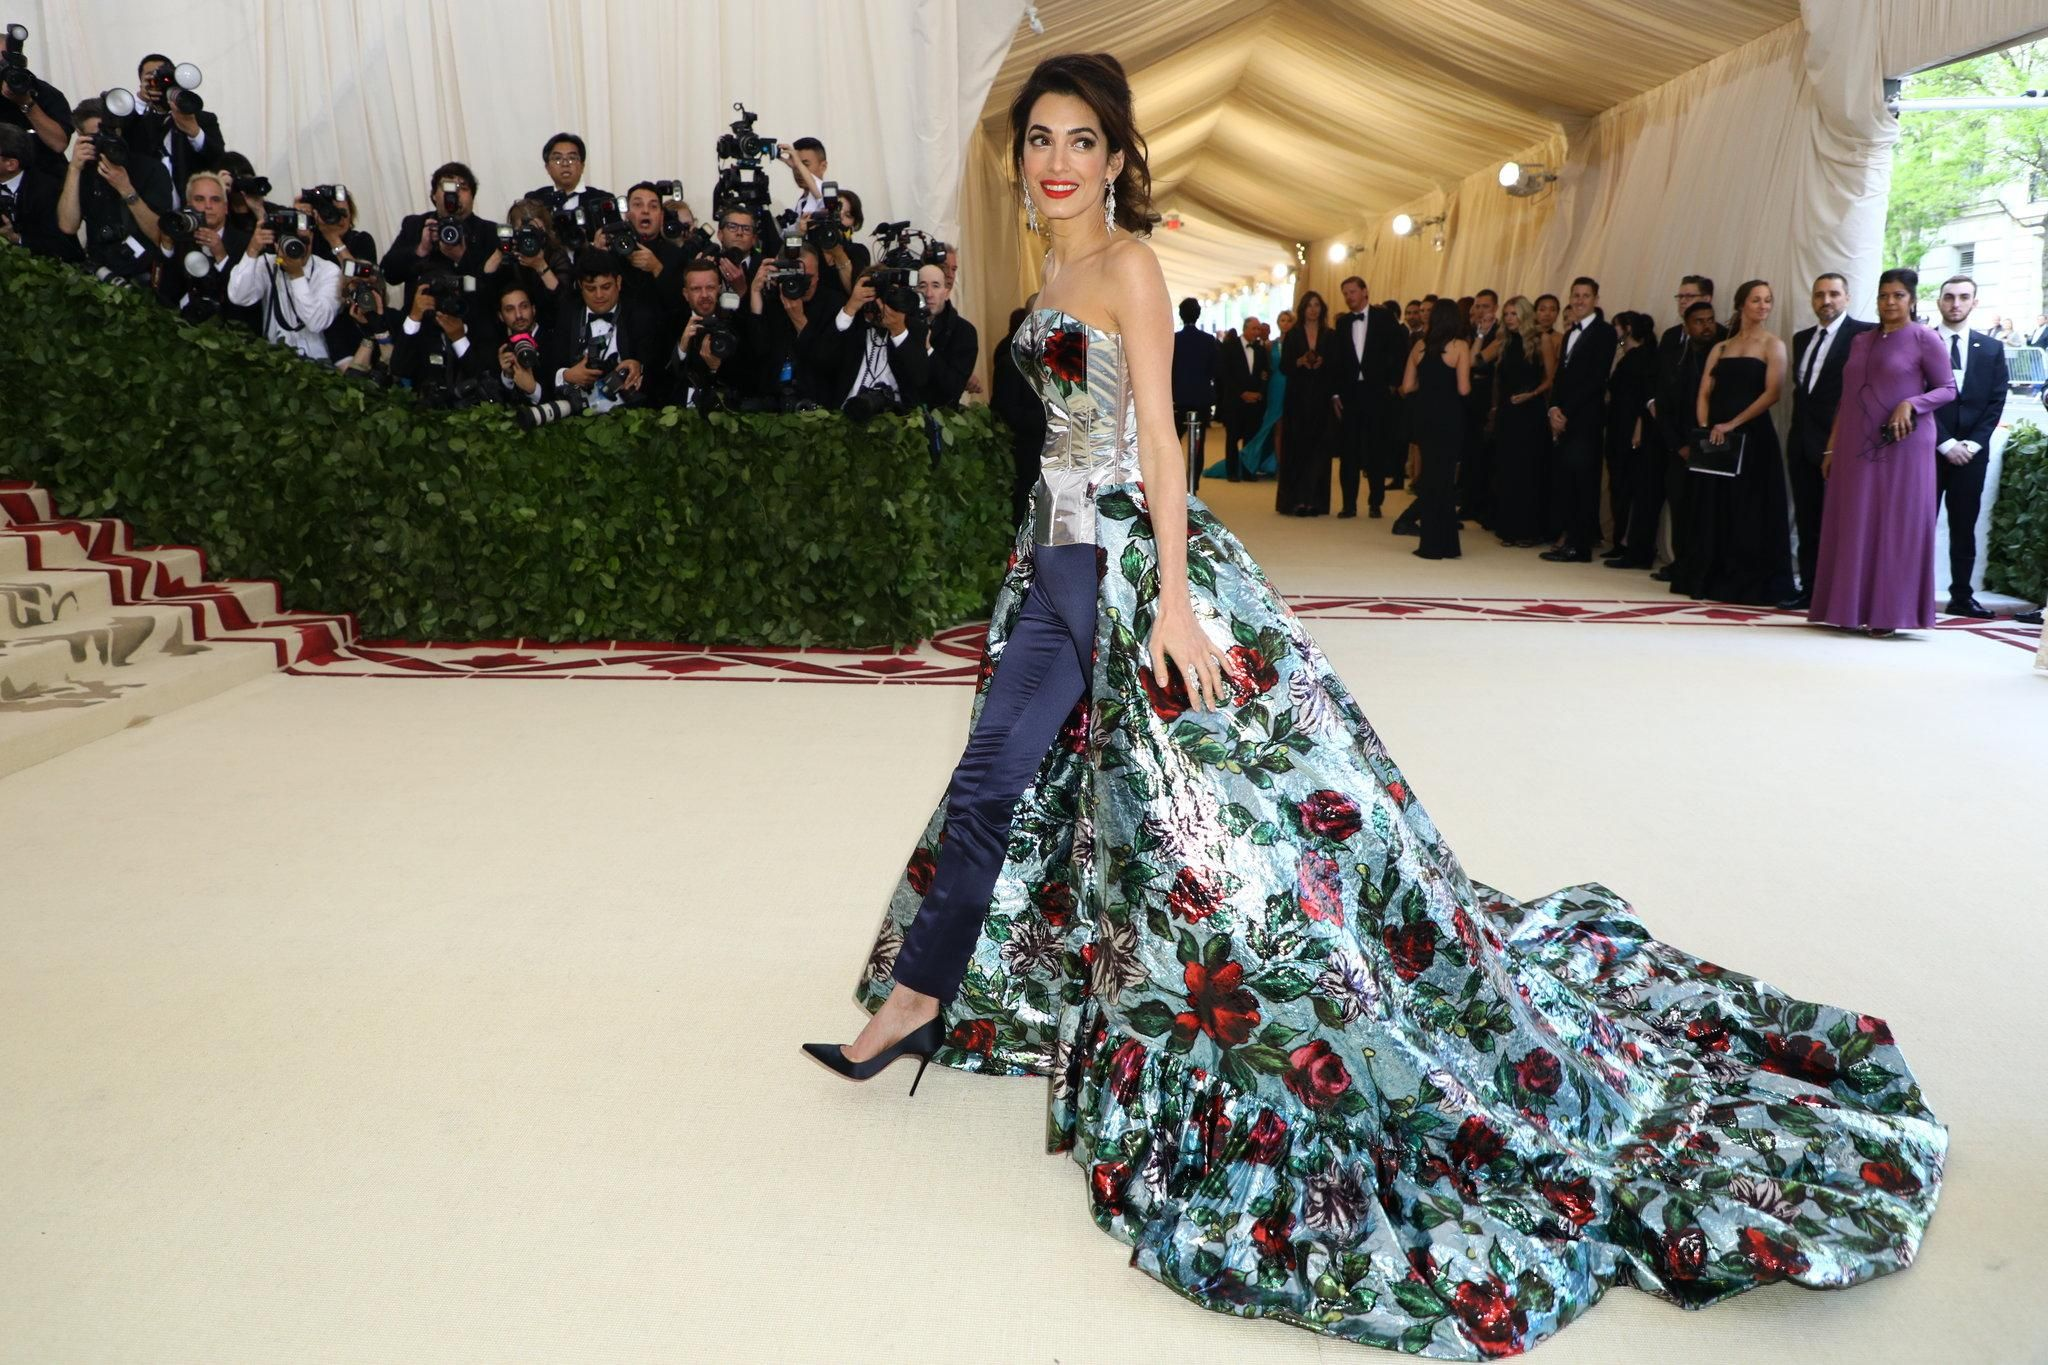 472d004b0f The Met Gala 2018  Live Updates From the Red Carpet - The New York Times